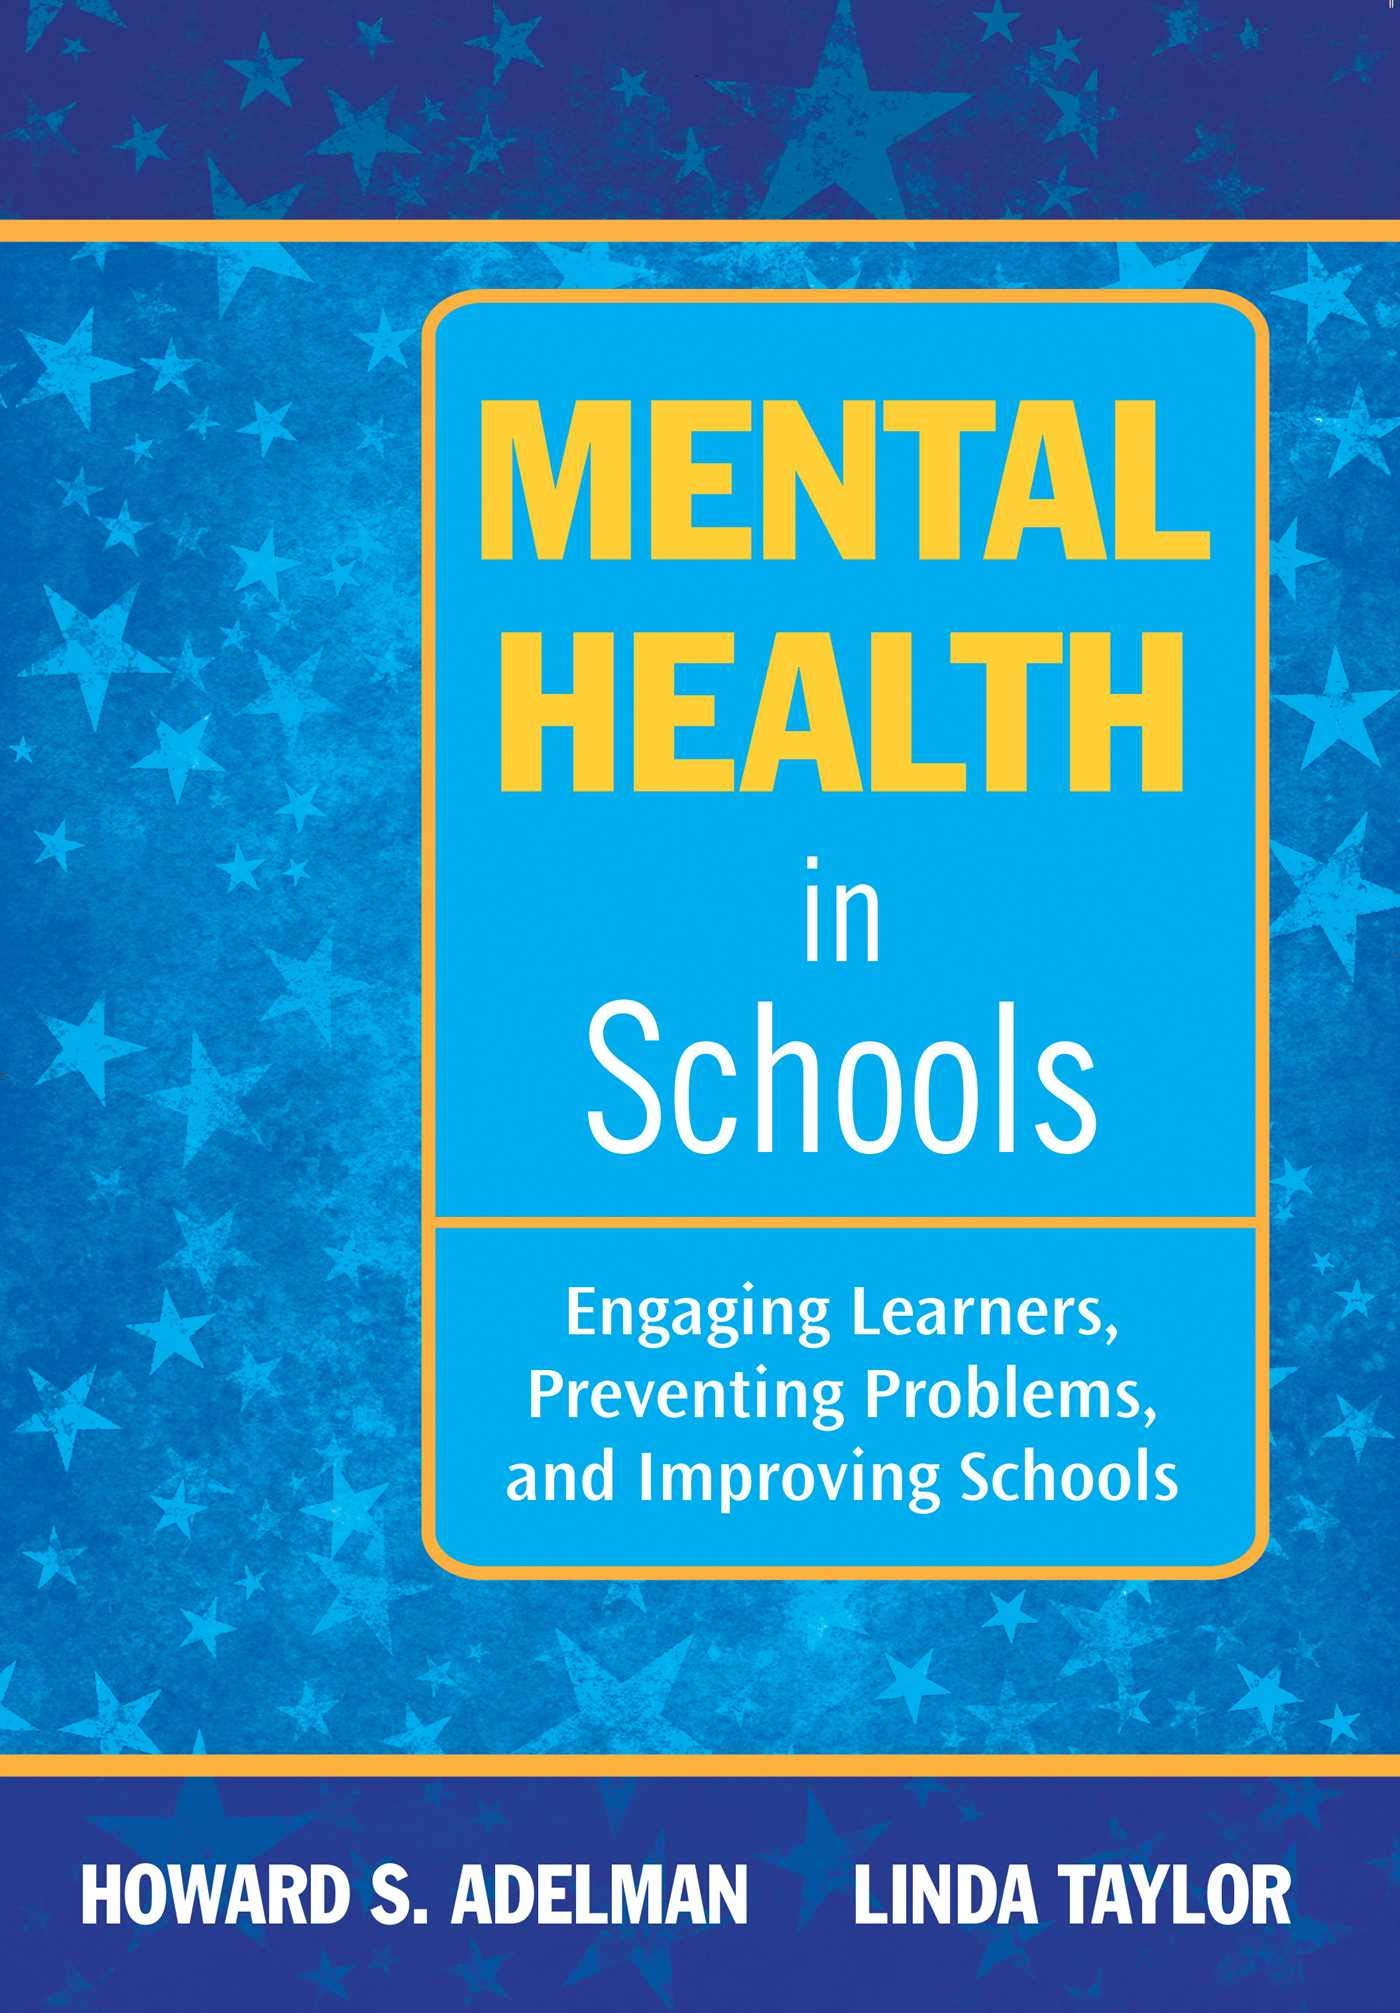 Mental Health in Schools: Engaging Learners, Preventing Problems, and Improving  Schools: Howard S. Adelman, Linda Taylor: 9781634503068: Amazon.com: Books